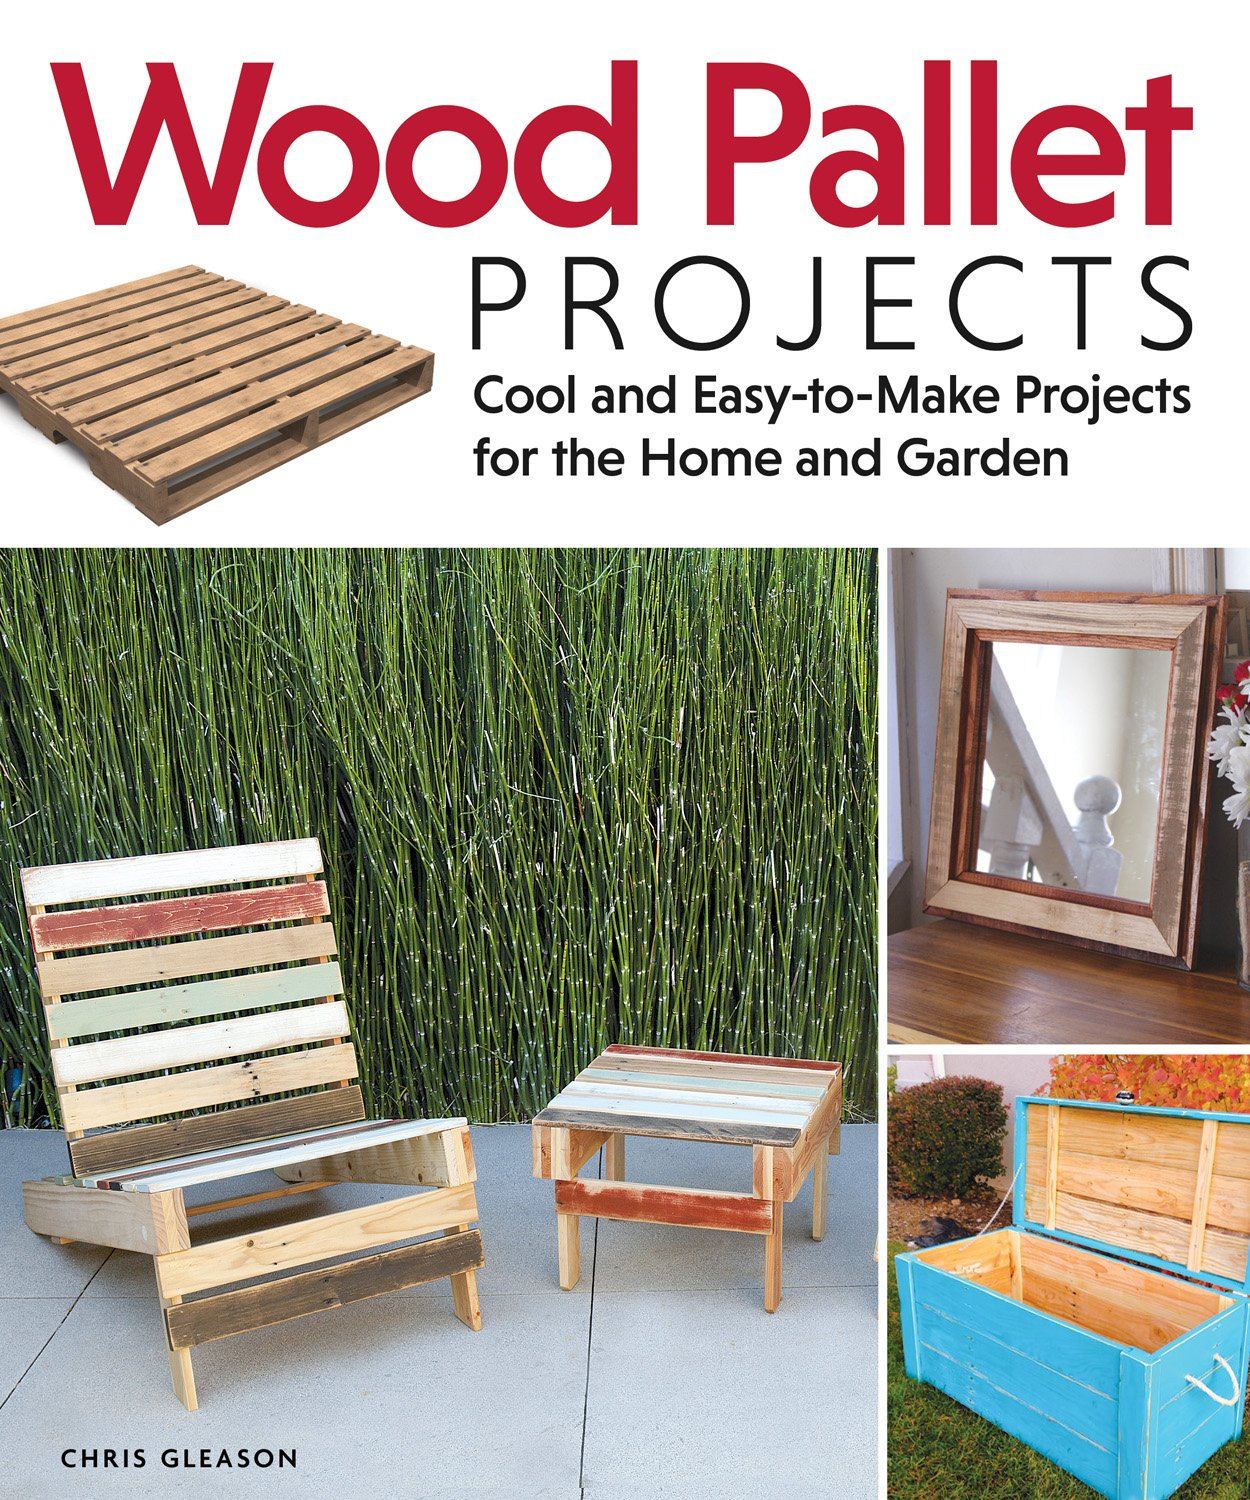 wood pallet projects cool and easy to make projects for the home and garden chris gleason 9781565235441 amazoncom books